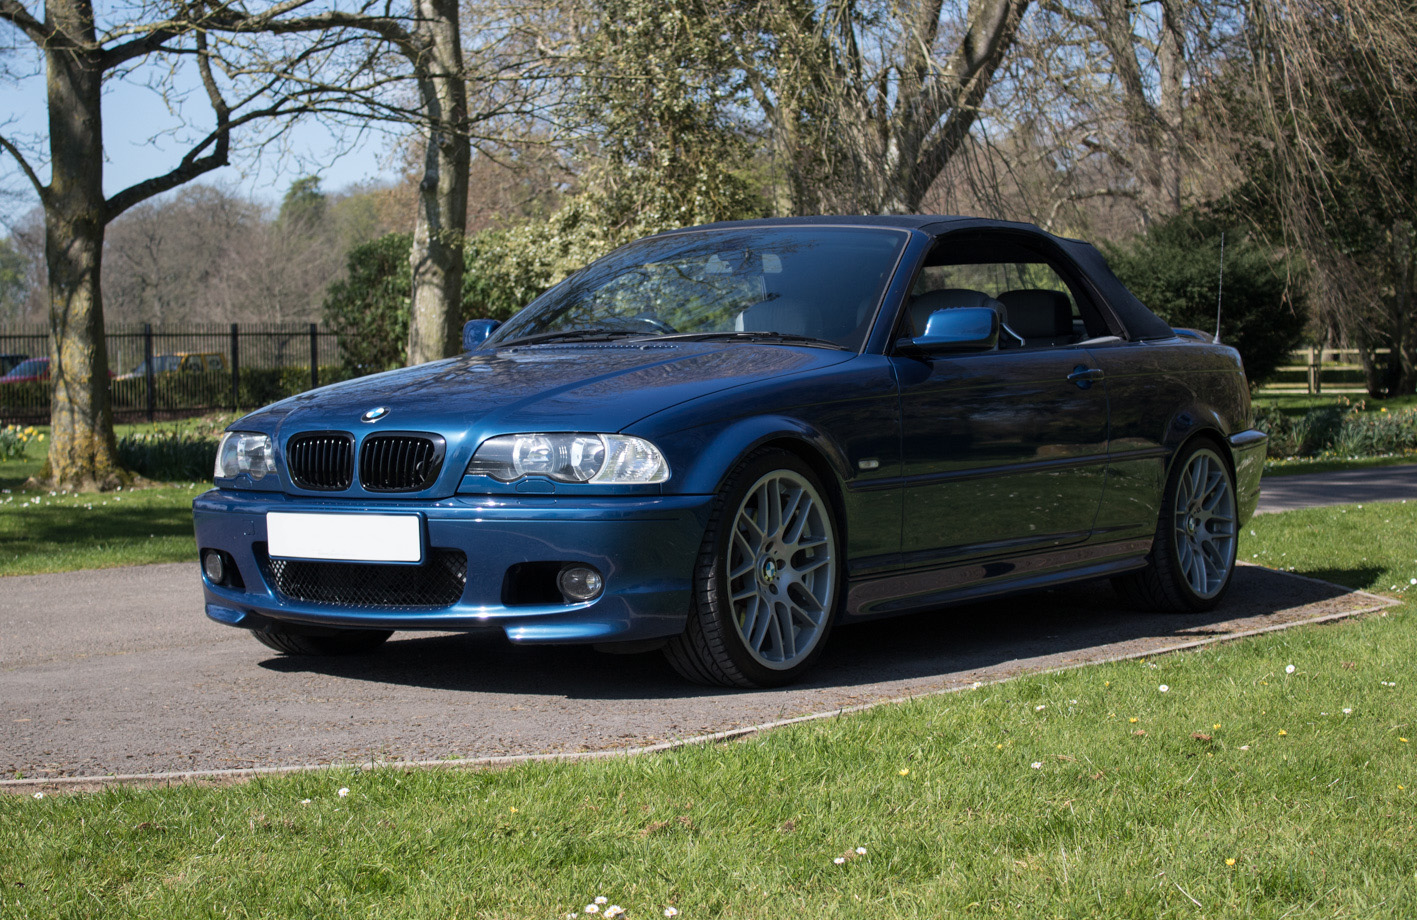 2001 bmw 330 ci sport cars of somerset. Black Bedroom Furniture Sets. Home Design Ideas